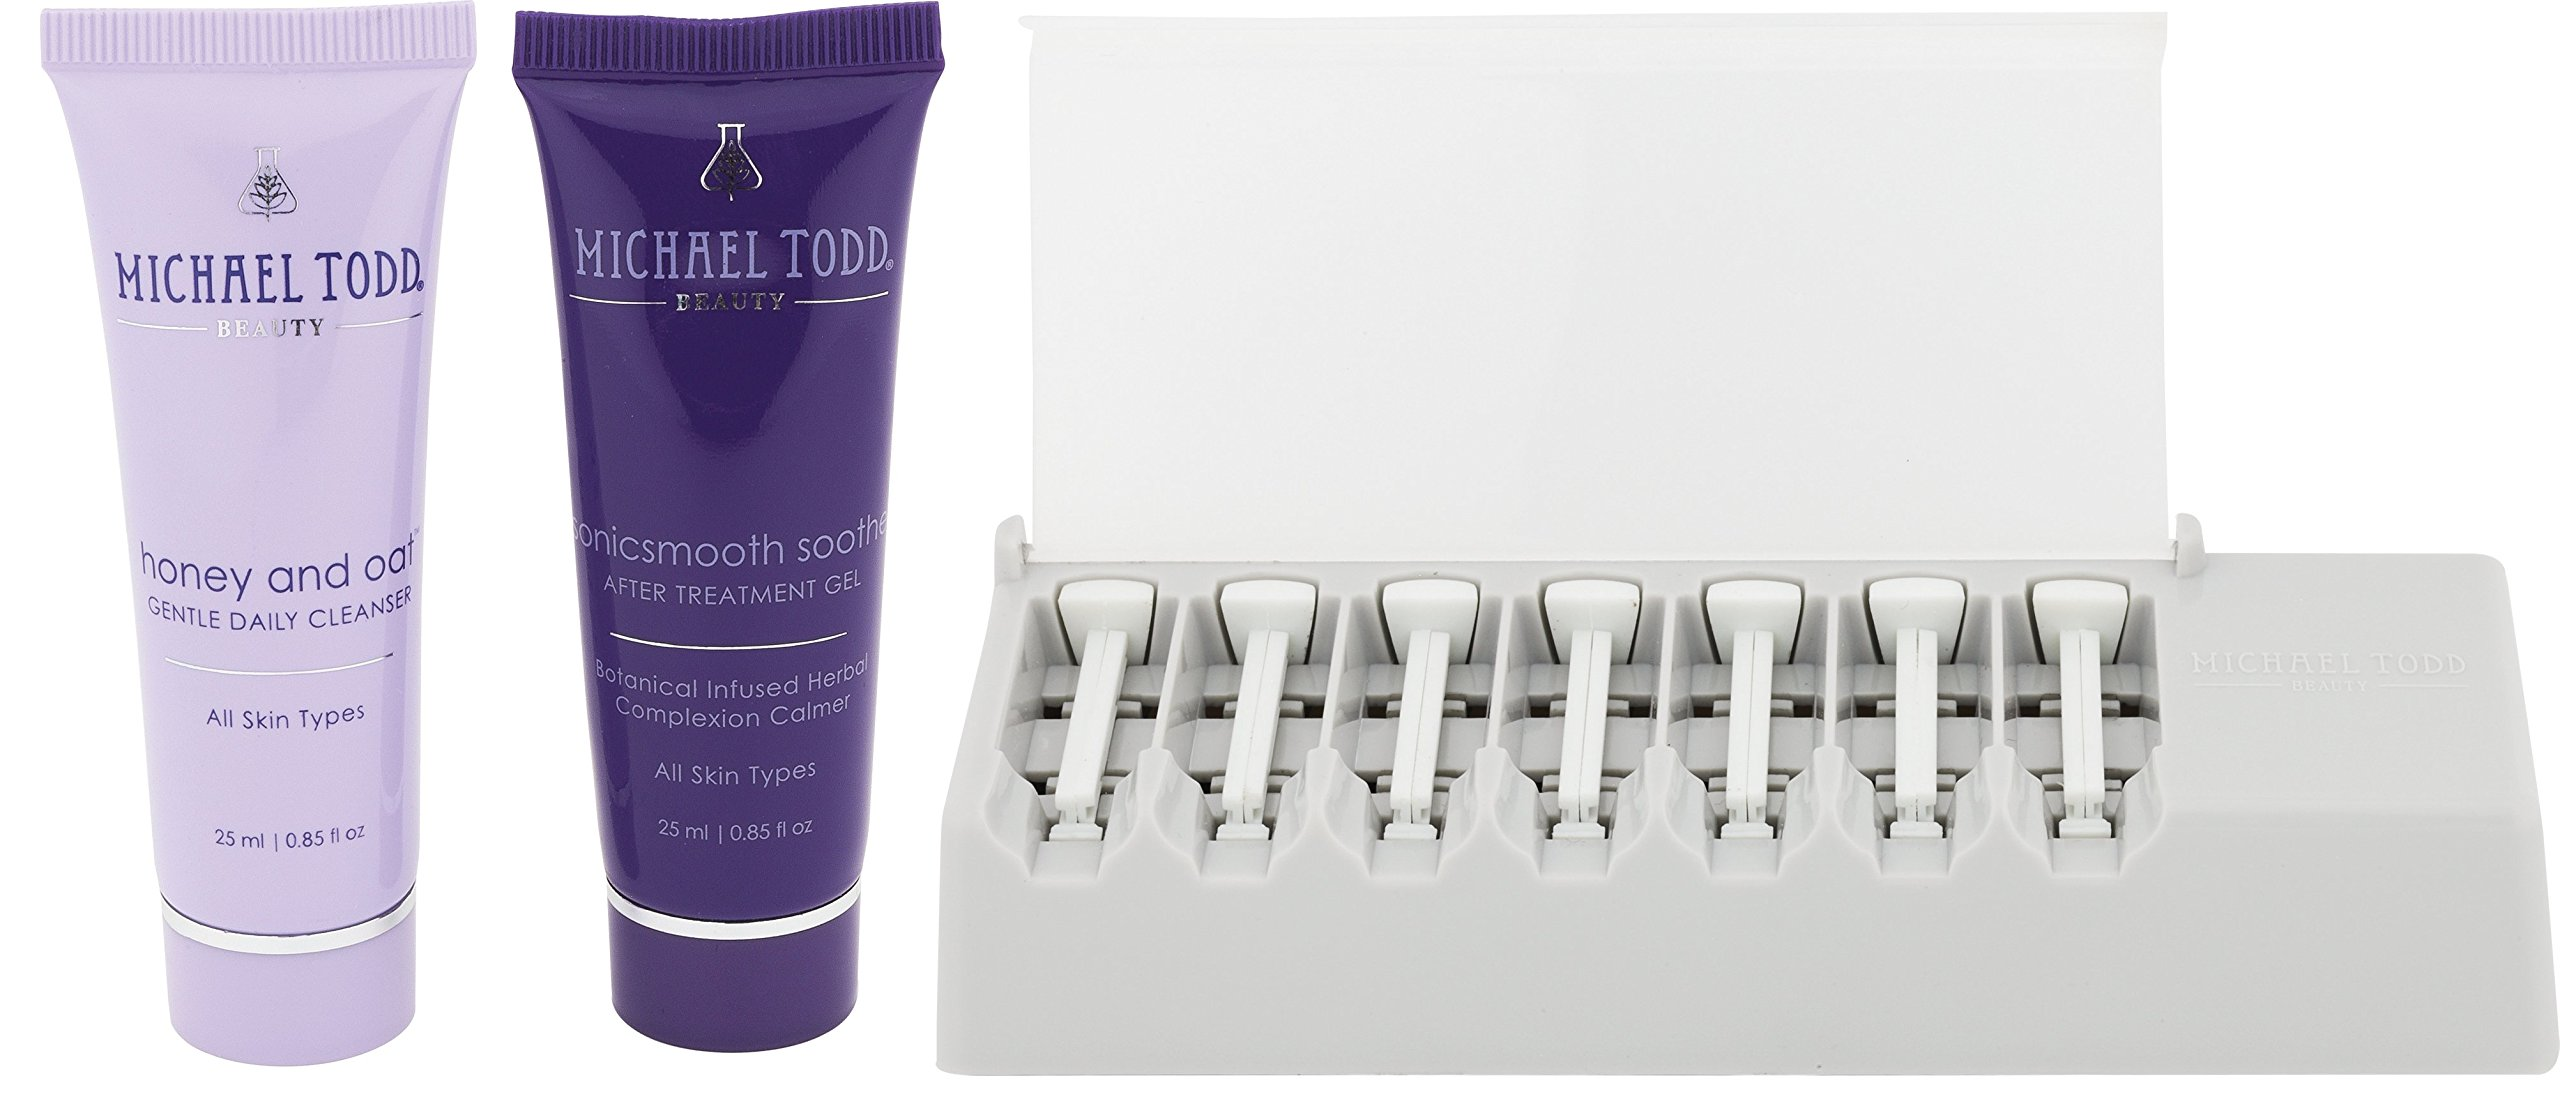 Michael Todd Sonicsmooth Replacement Kit for At-Home Dermaplaning by MICHAEL TODD